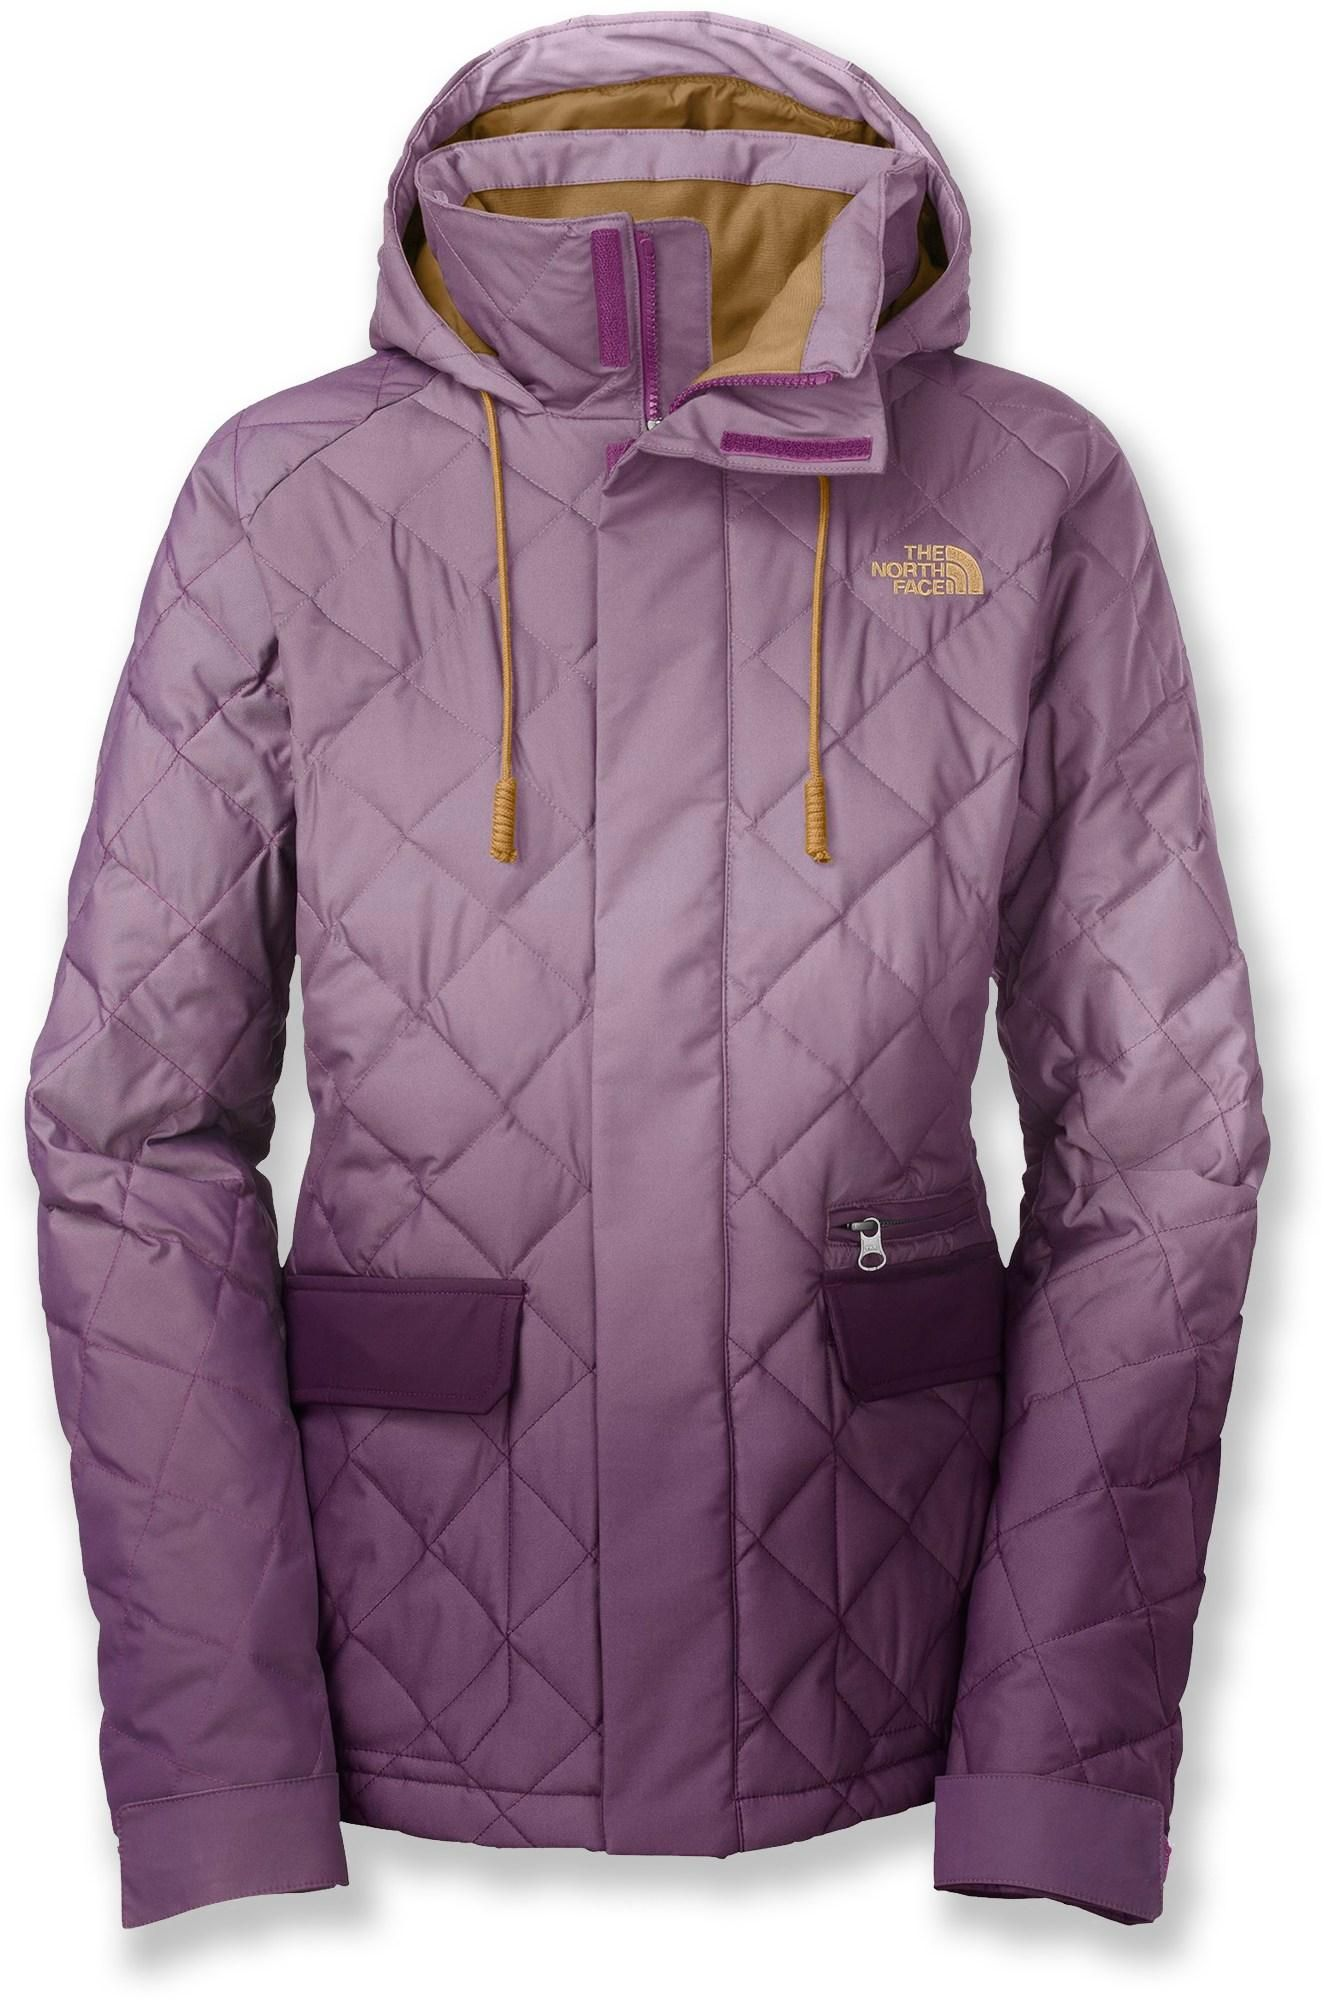 ombre jacket the north face first day down insulated jacket rh pinterest com